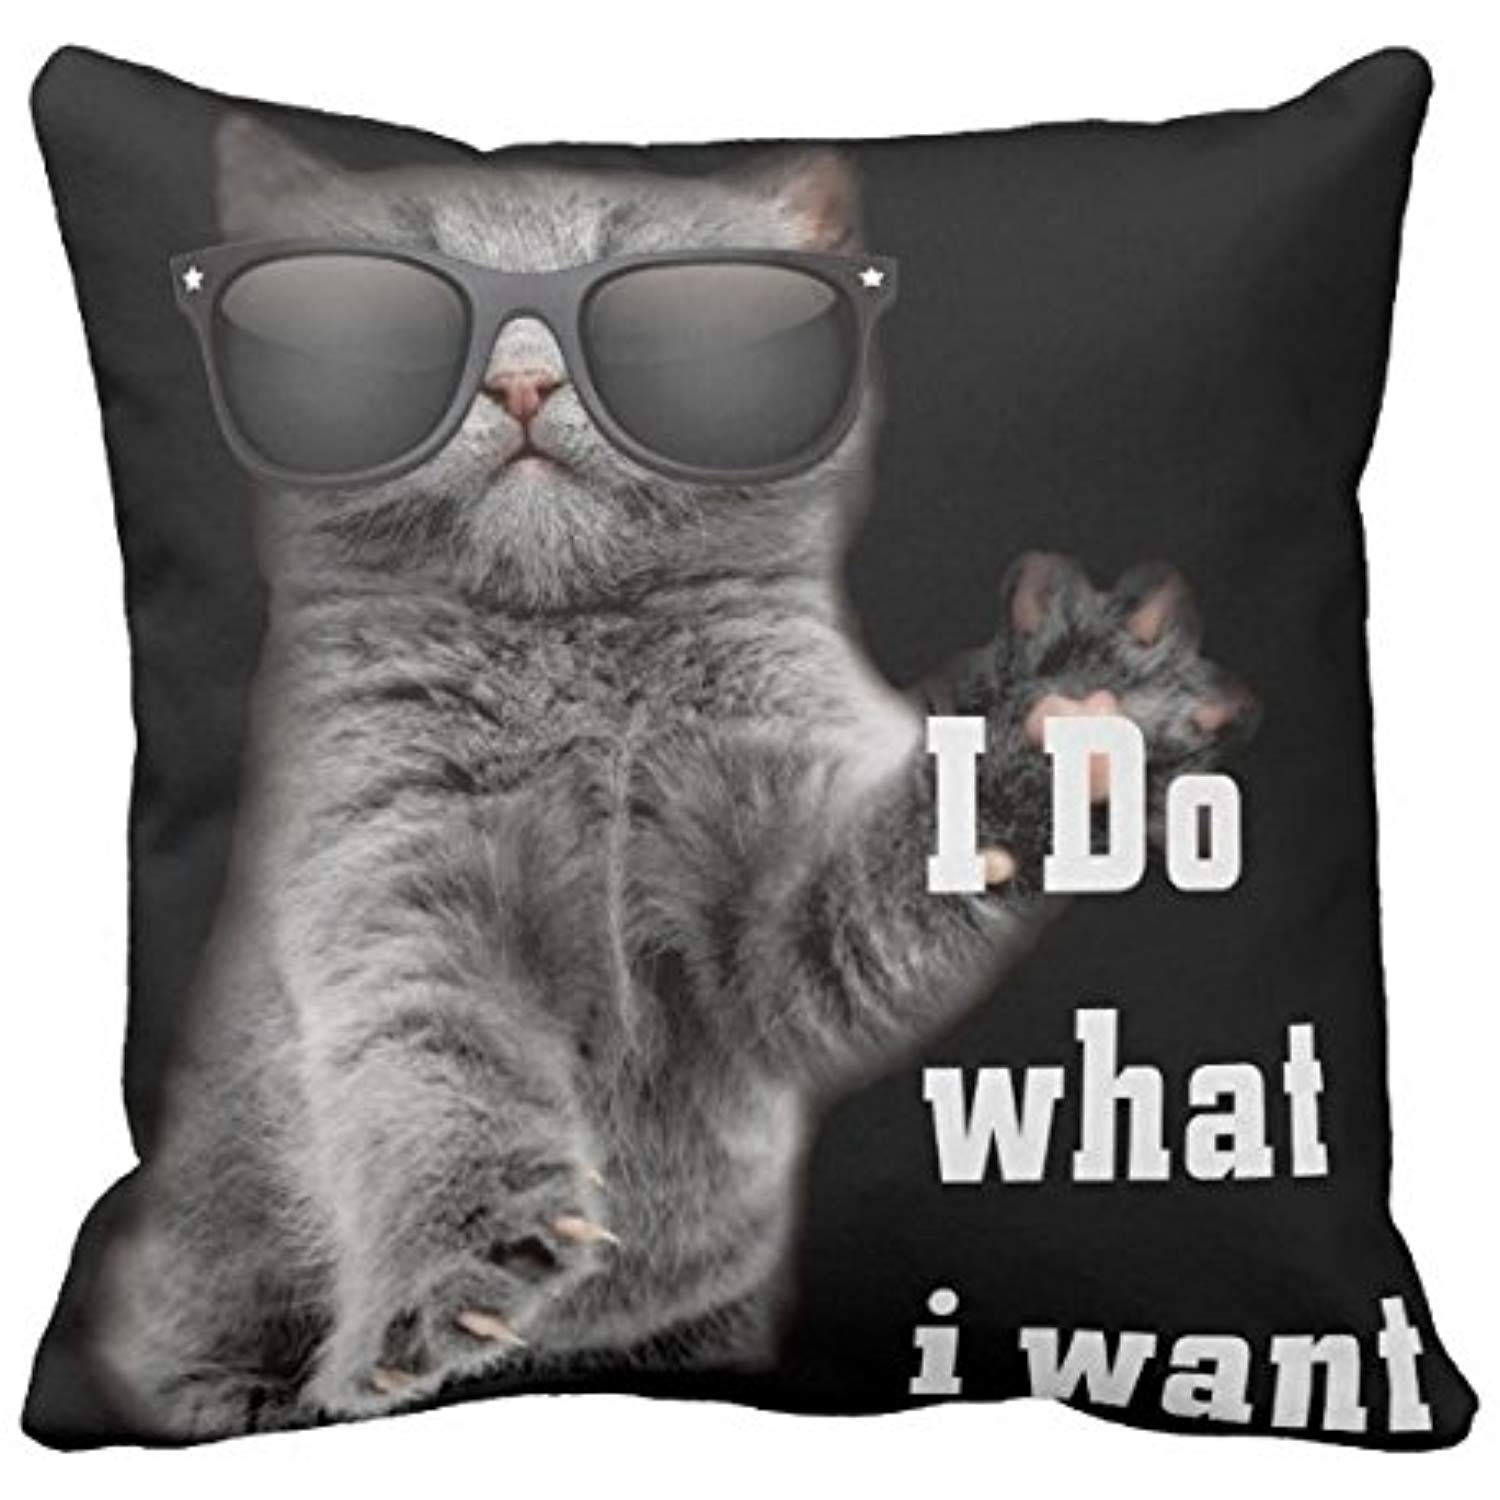 Kissenday 18x18 Inch I Do What I Want Funny Cat With Glasses Cotton Polyester Decorative Home Decor Sofa Couch Desk Chair Bedroom Car Neutral Kitty Lover Christmas Birthday Square Throw Pillow Case ** Read more reviews of the product by visiting the link on the image. (This is an affiliate link) #bedding